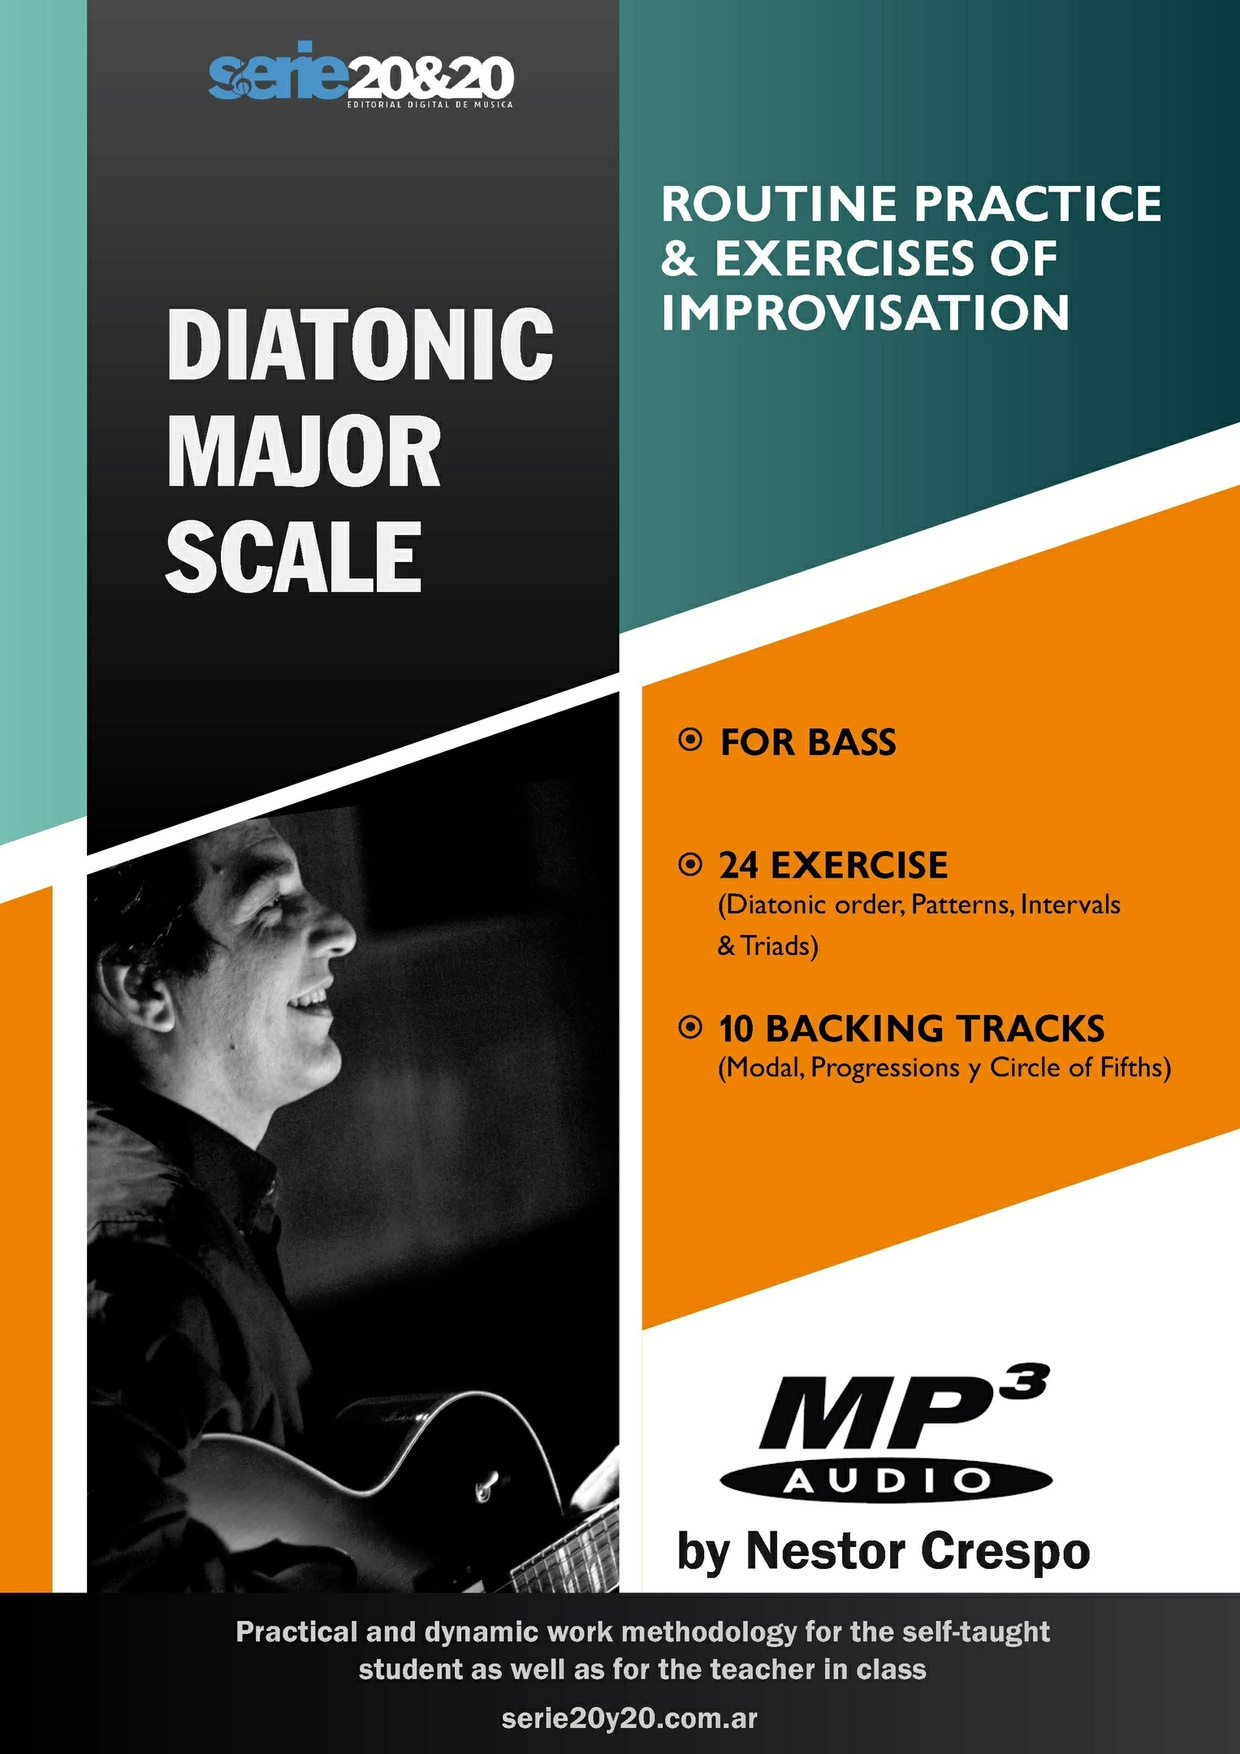 BASS / Major Scale  (Practice Routine & Improvisation)